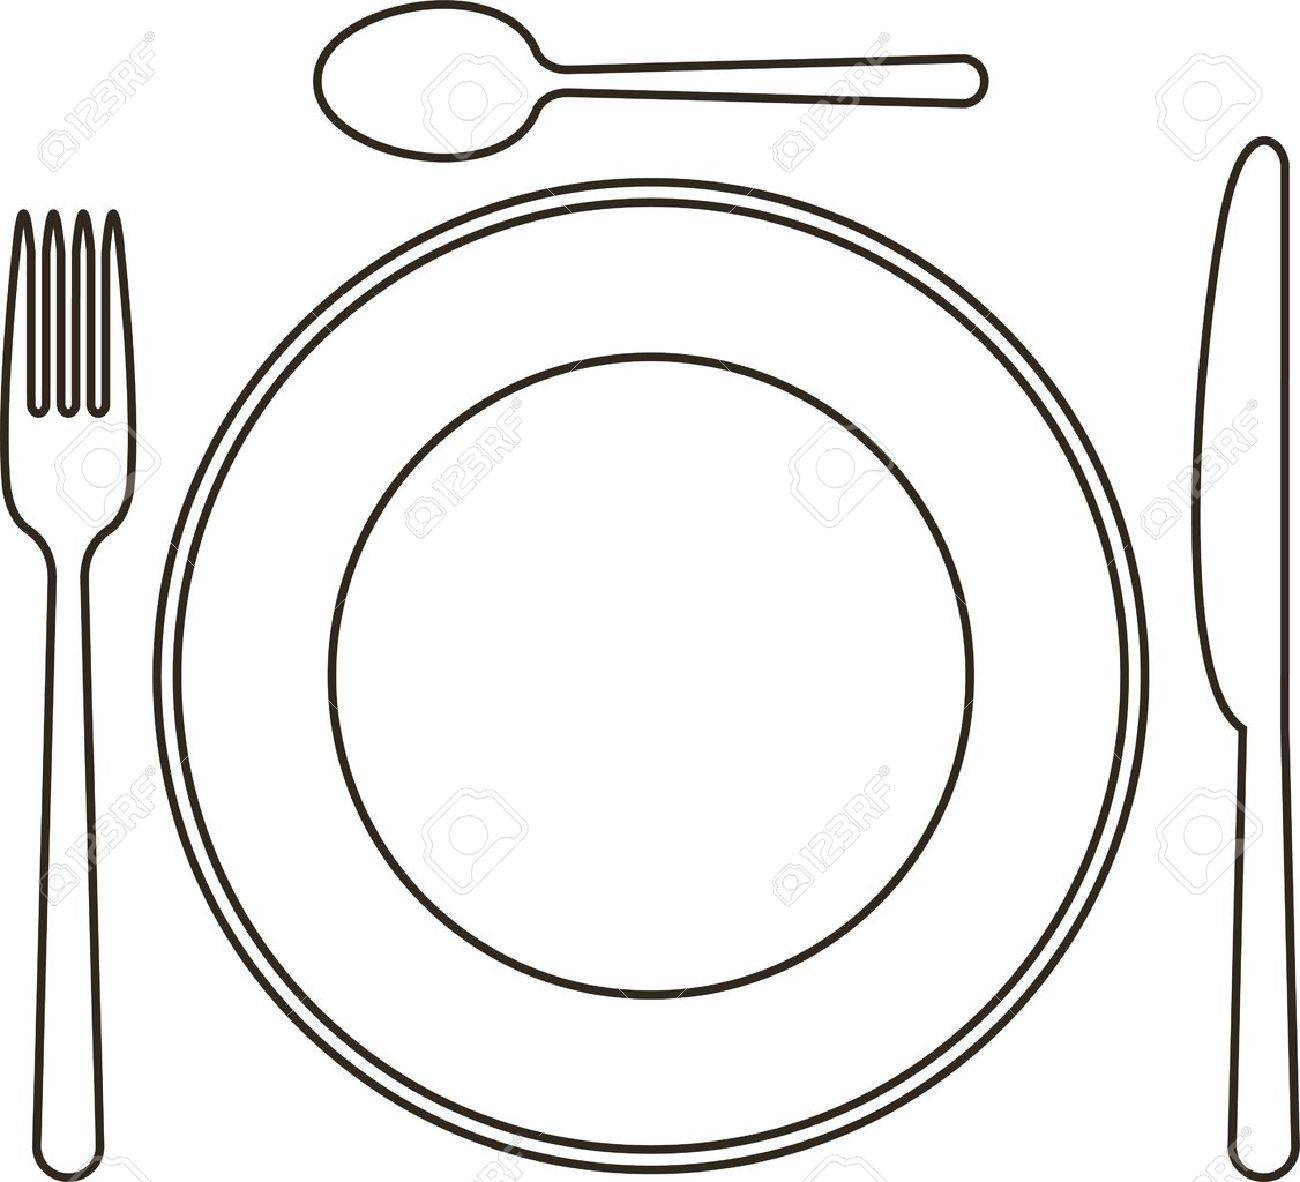 Plate Setting Clipart.